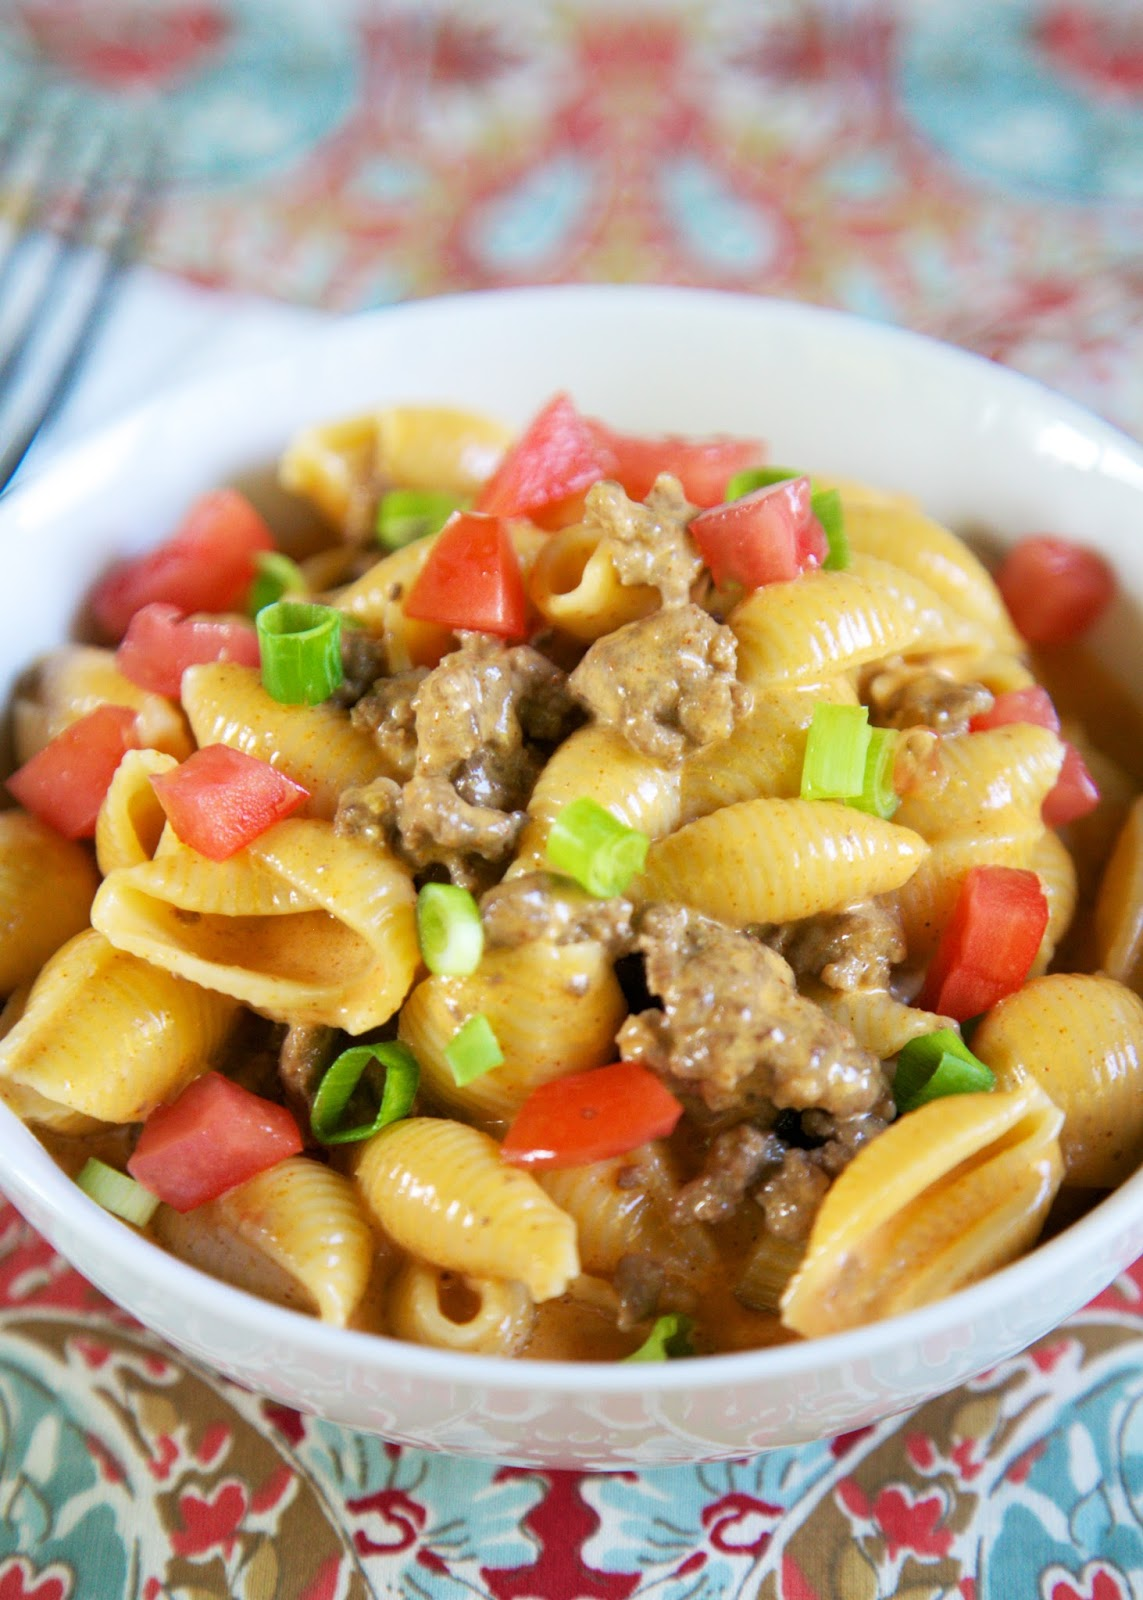 Beef Enchilada Macaroni and Cheese - quick Mexican recipe! Hamburger, pasta shells, heavy cream, enchilada sauce, cheese - top with tomatoes and green onions. Super simple and SO delicious! Ready in 10 minutes!